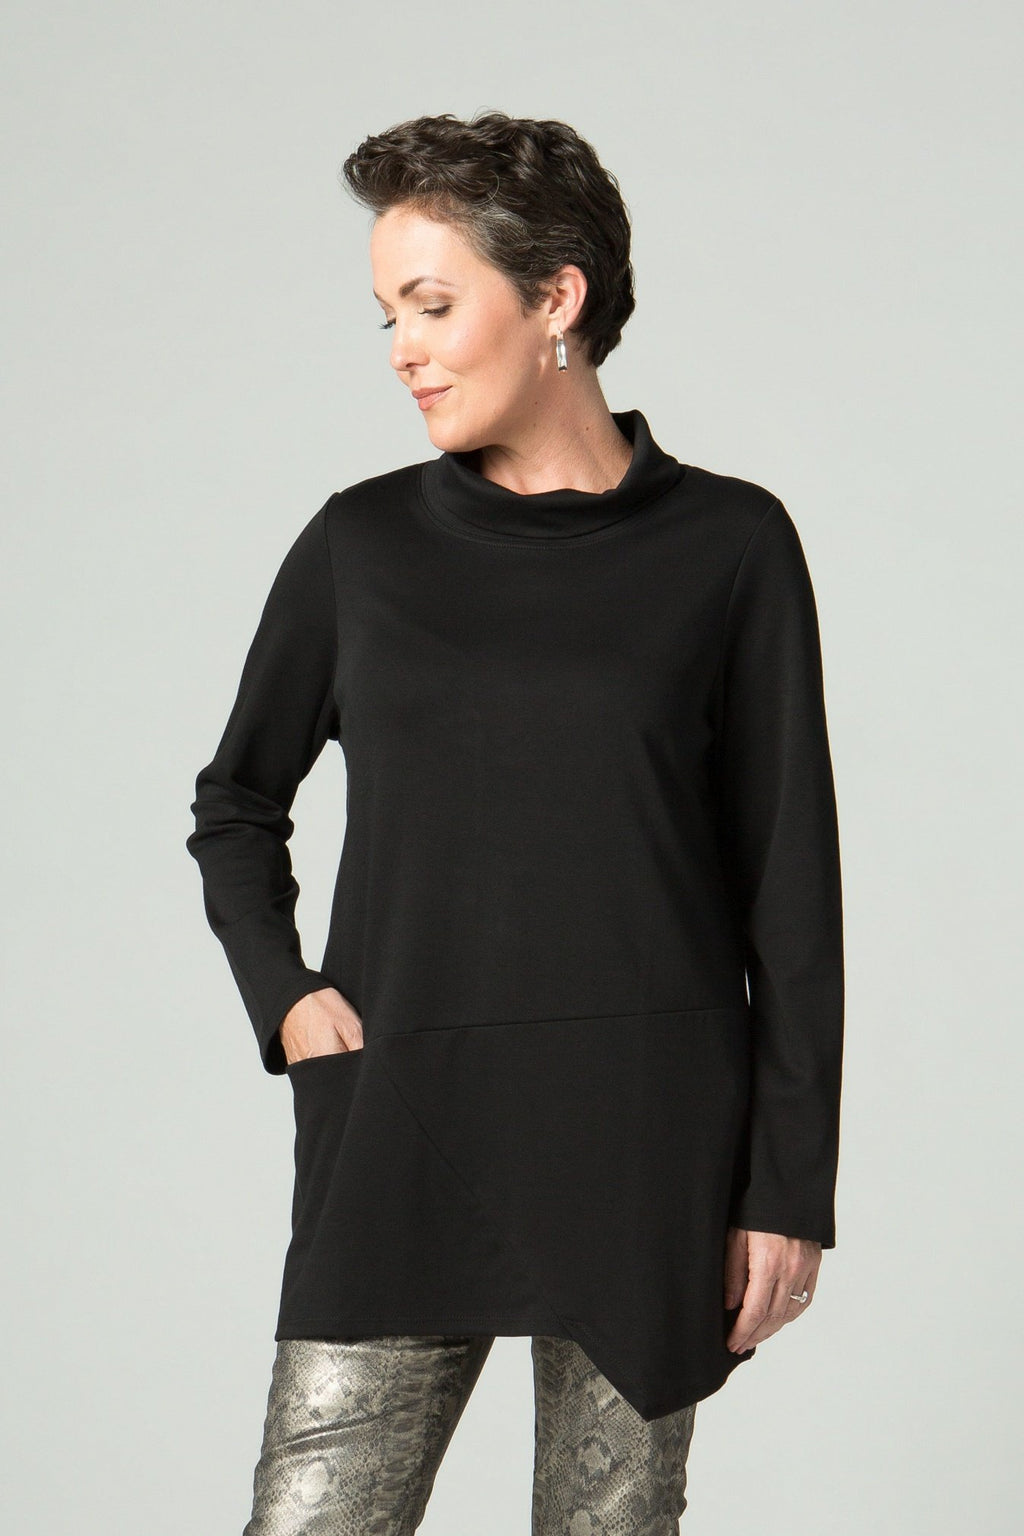 Long Sleeve Turtle Neck Tunic with Front Pocket - New Orleans Knitwear